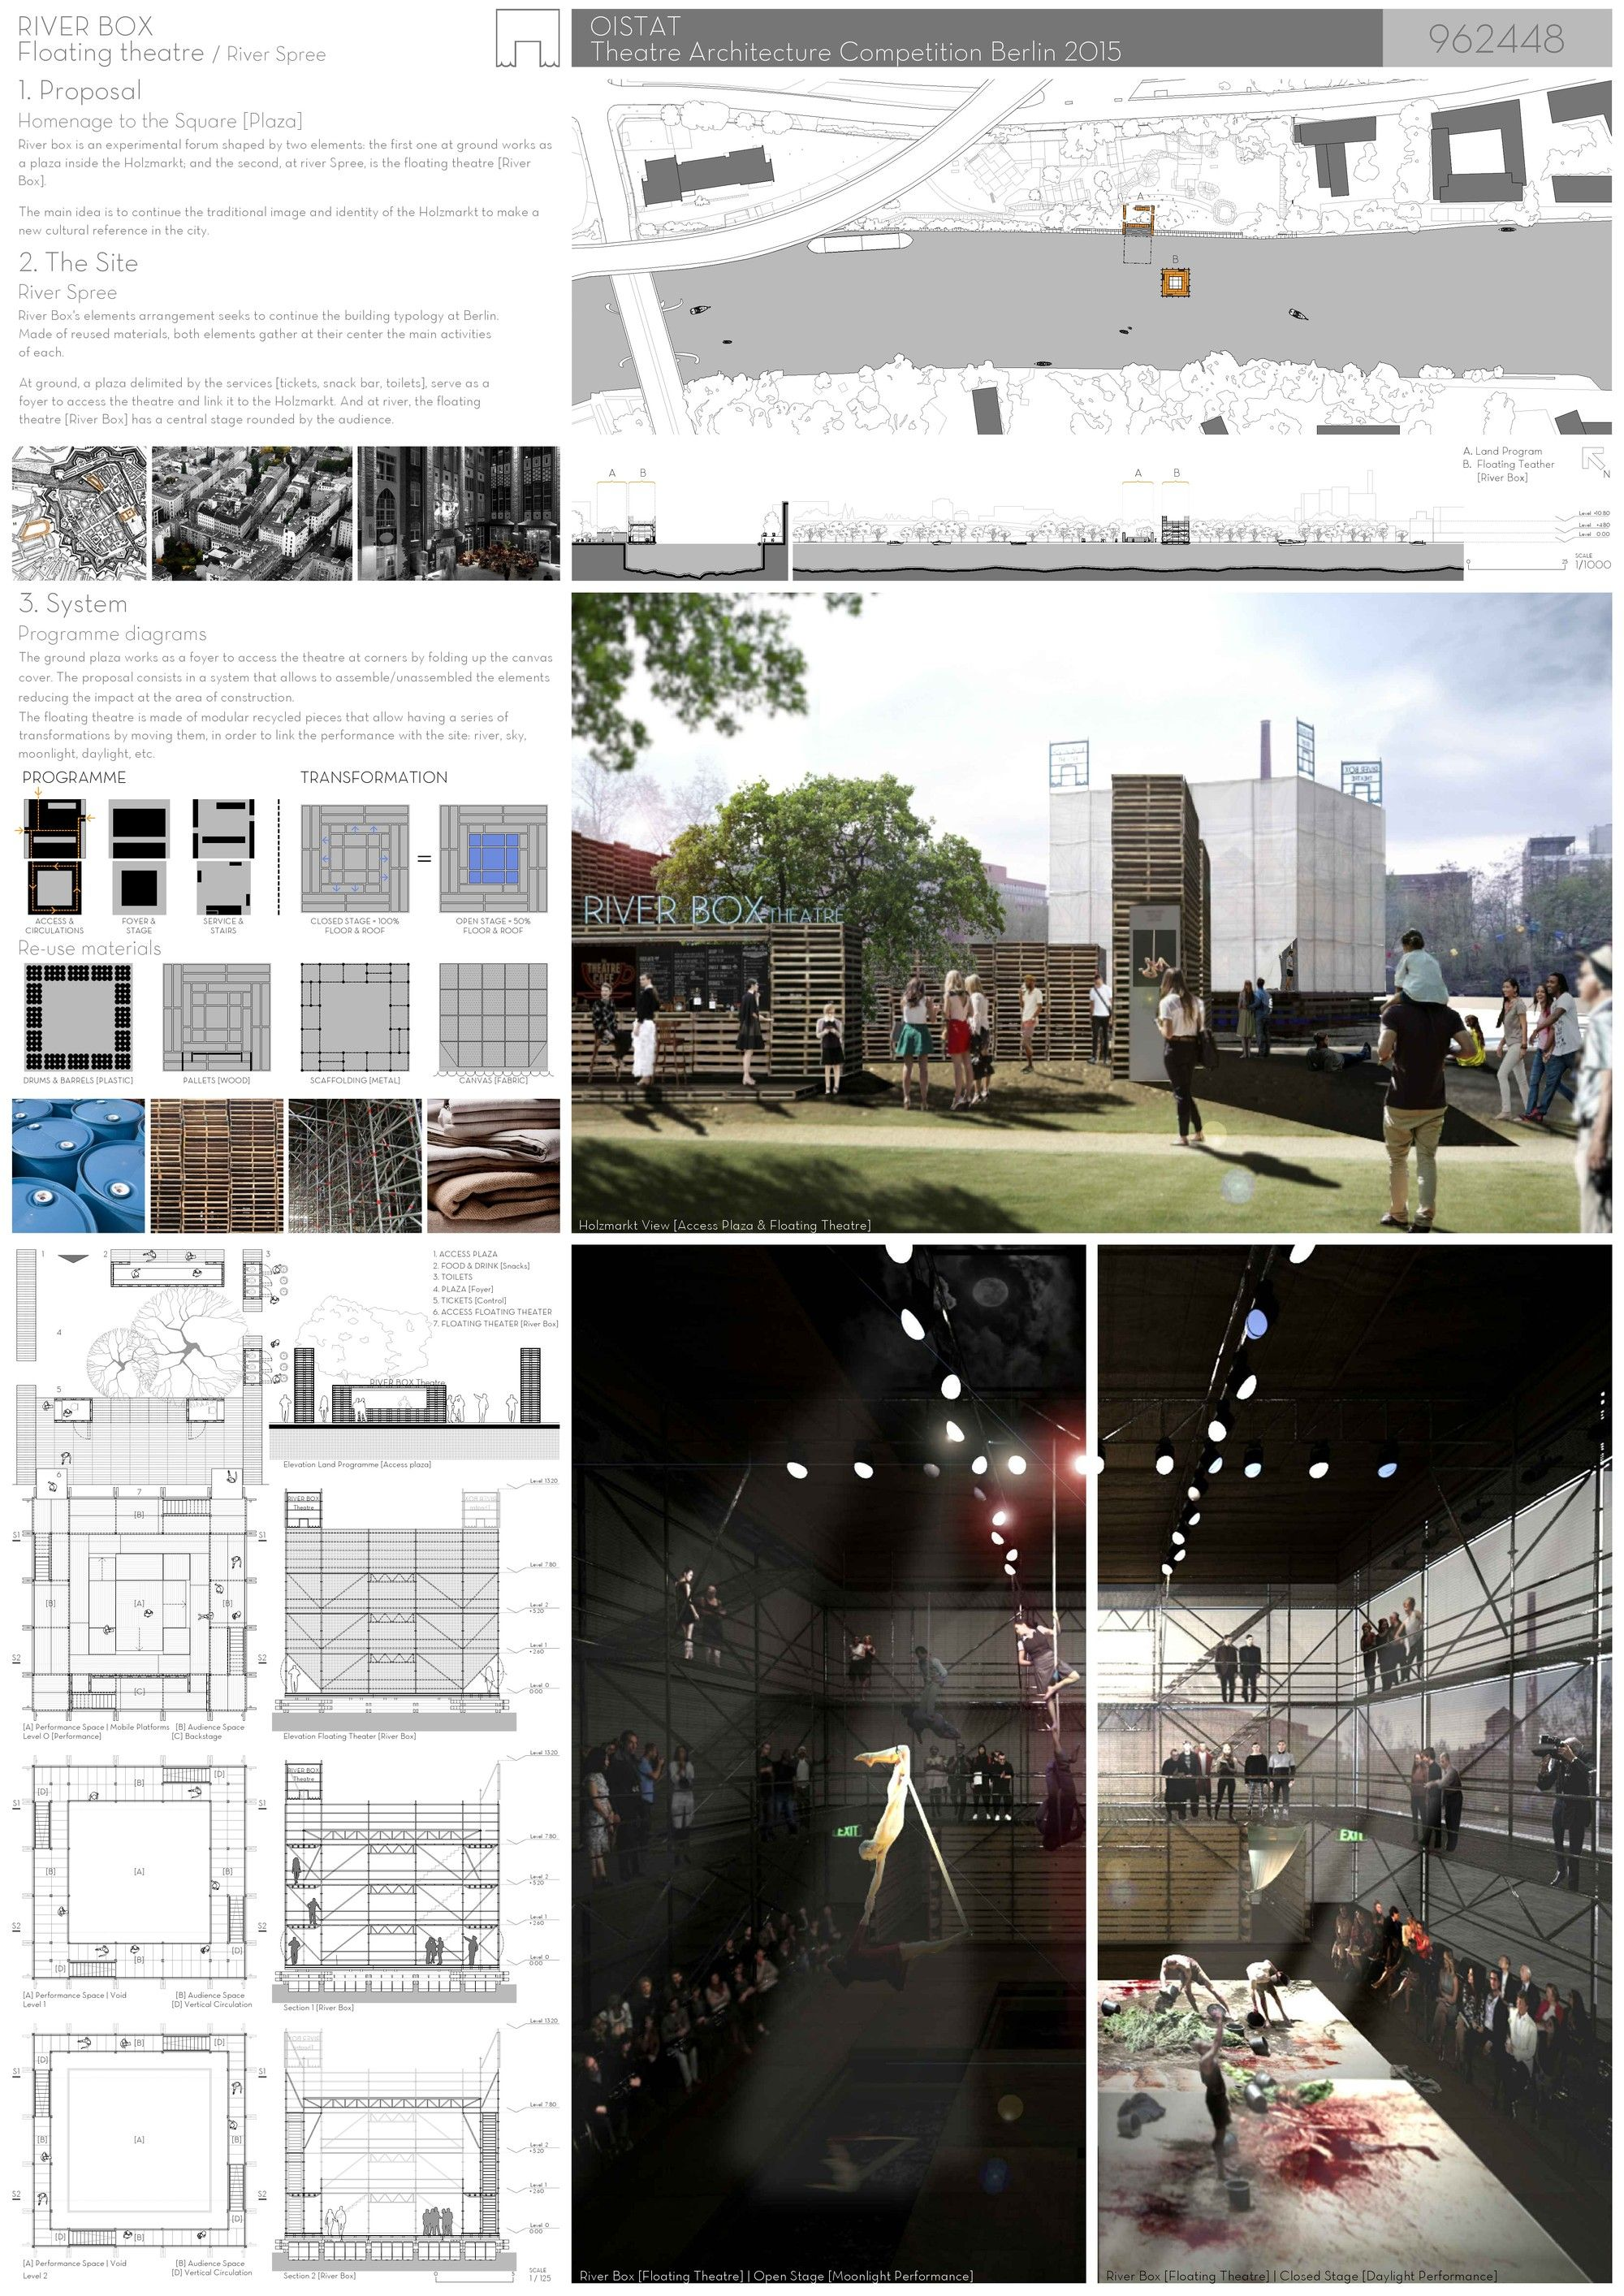 Gallery Of 6 Winners Selected For OISTAT Competition To Design A